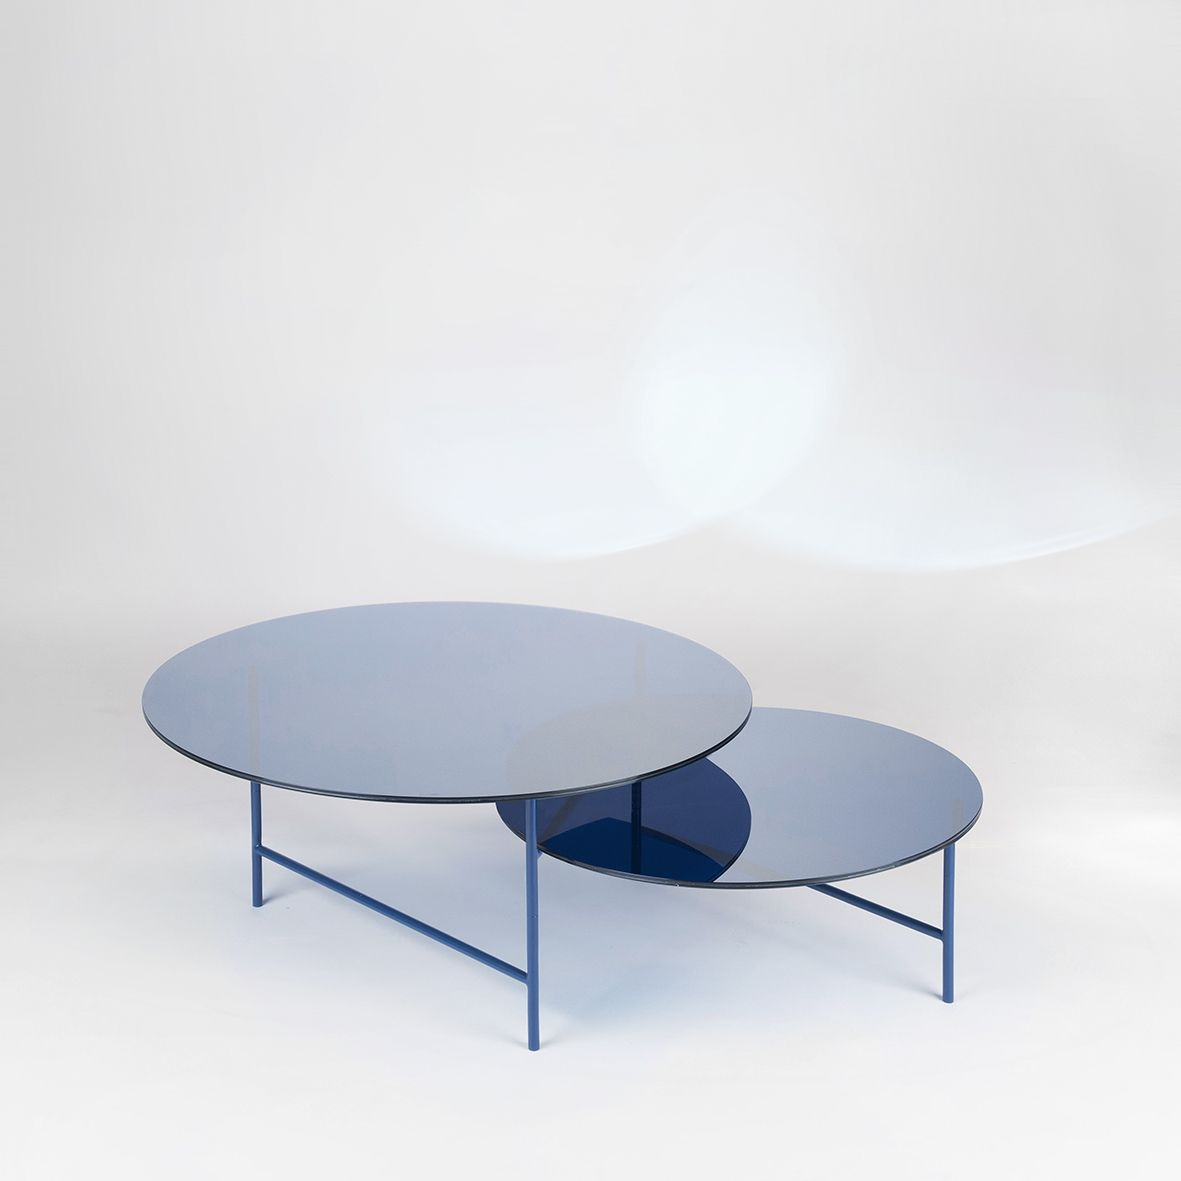 Zorro Table Side Table Design Coffee Table Design Coffee Table To Dining Table [ 1181 x 1181 Pixel ]